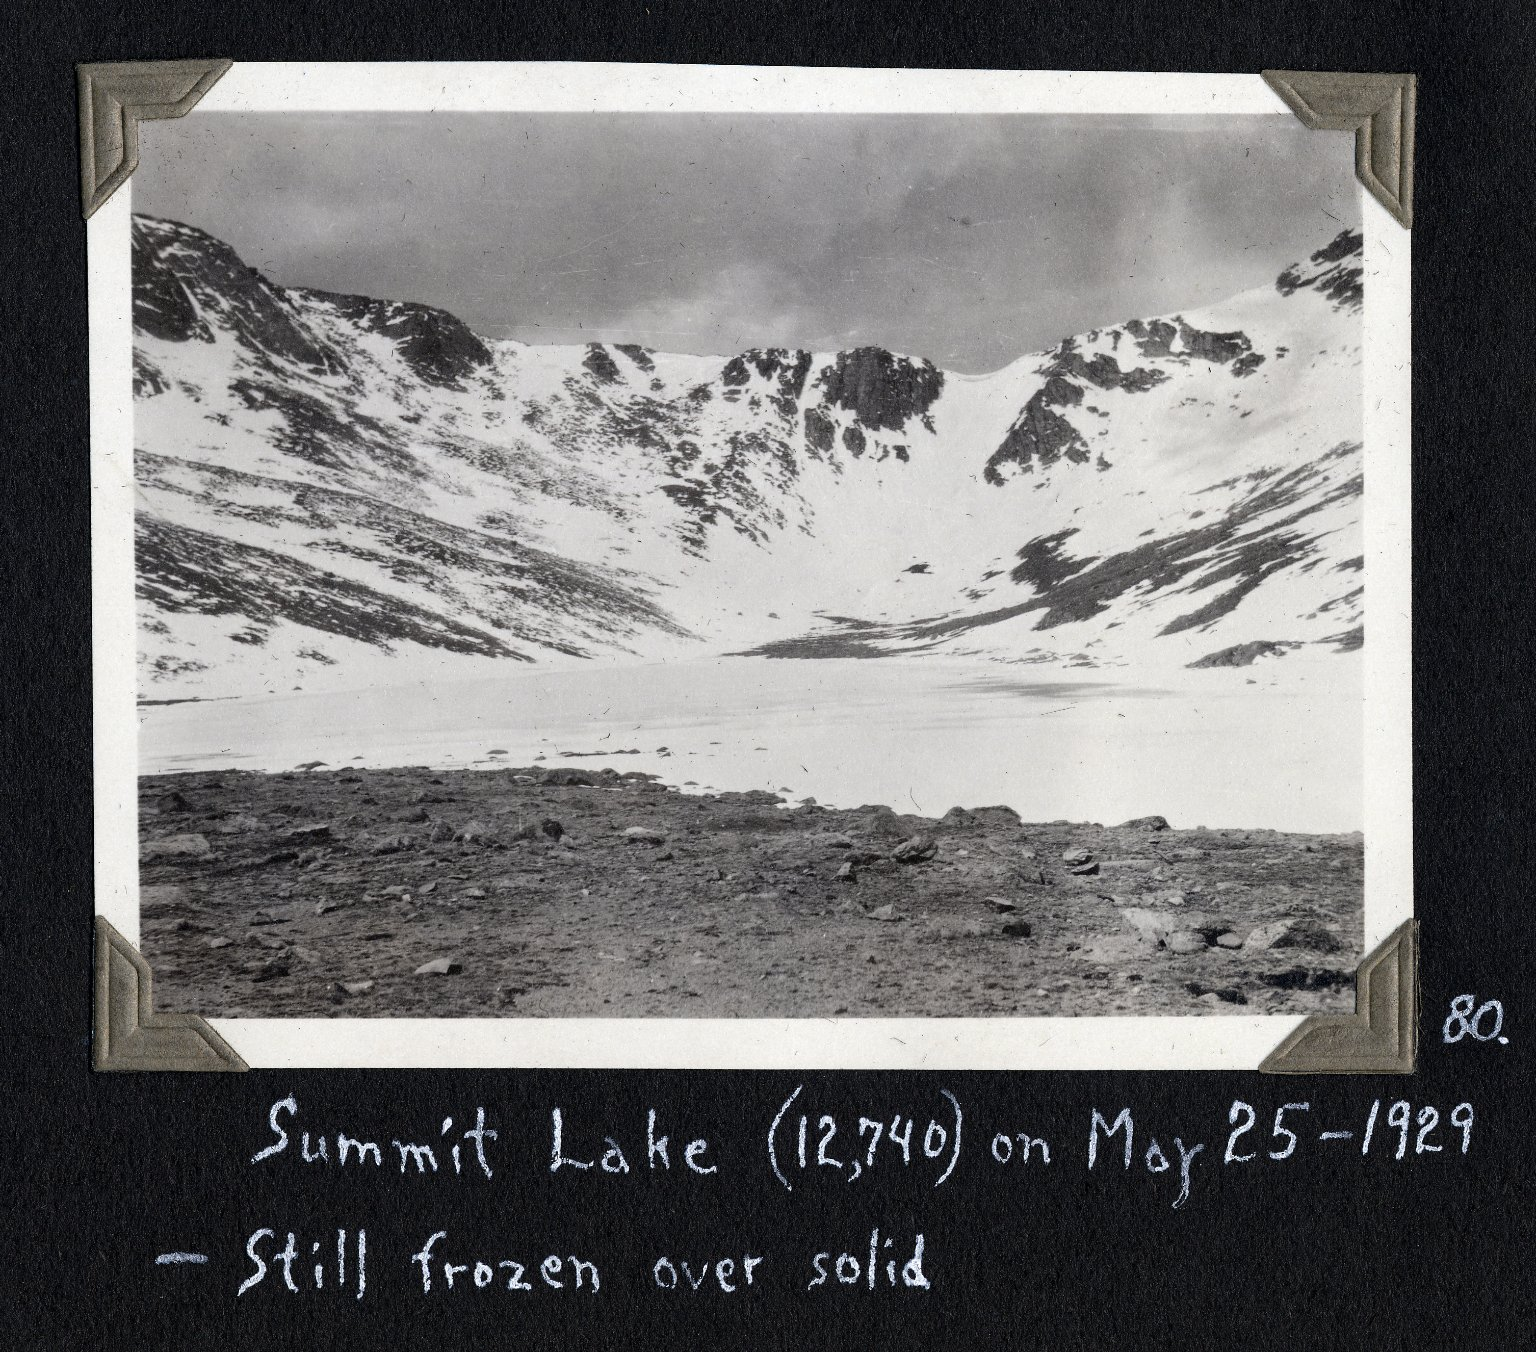 Summit Lake, frozen in May